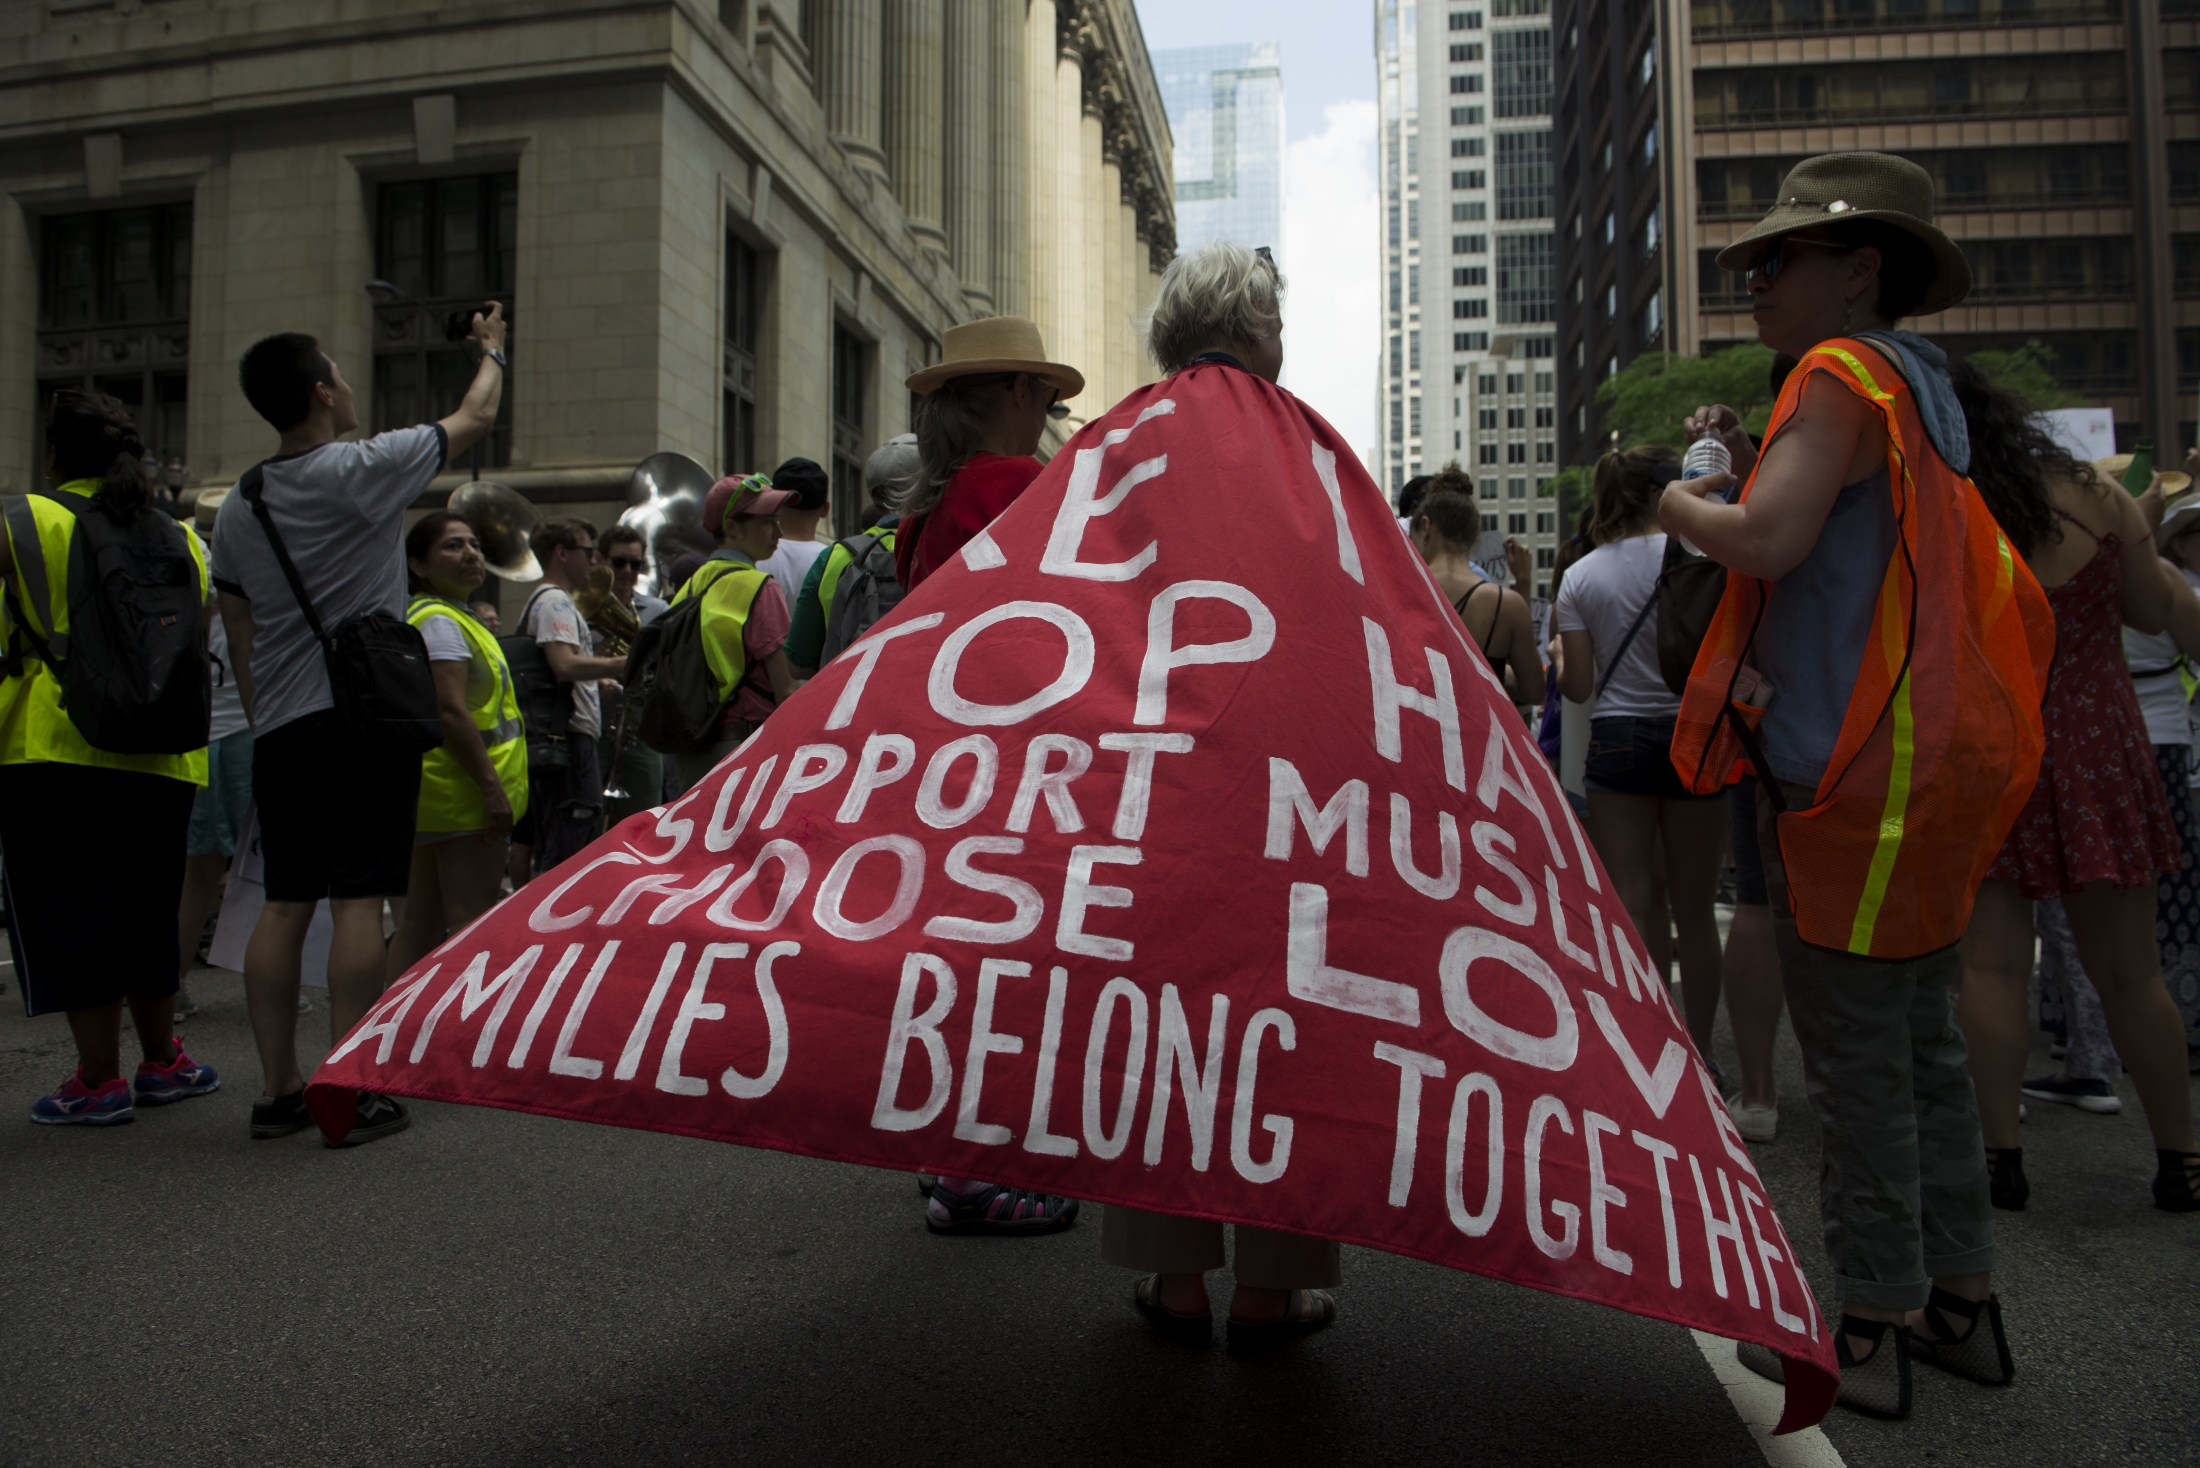 <p>#familiesbelongtogether Chicago</p>